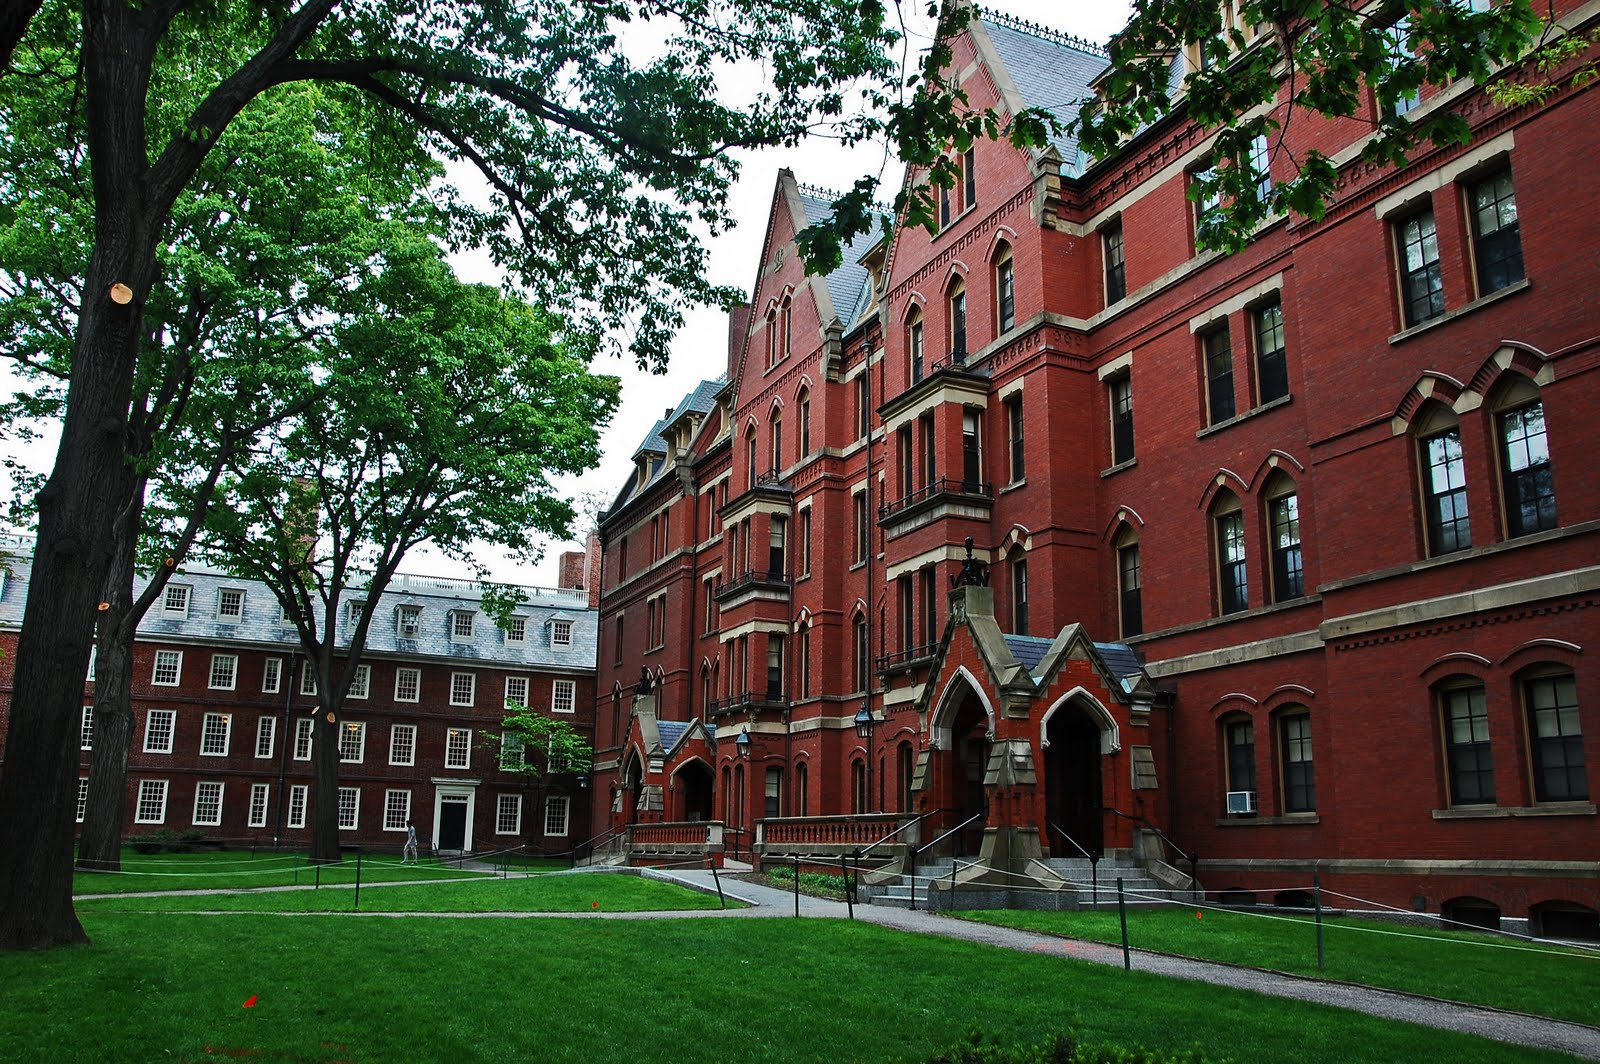 Harvard and best colleges in American to get a job after graduation